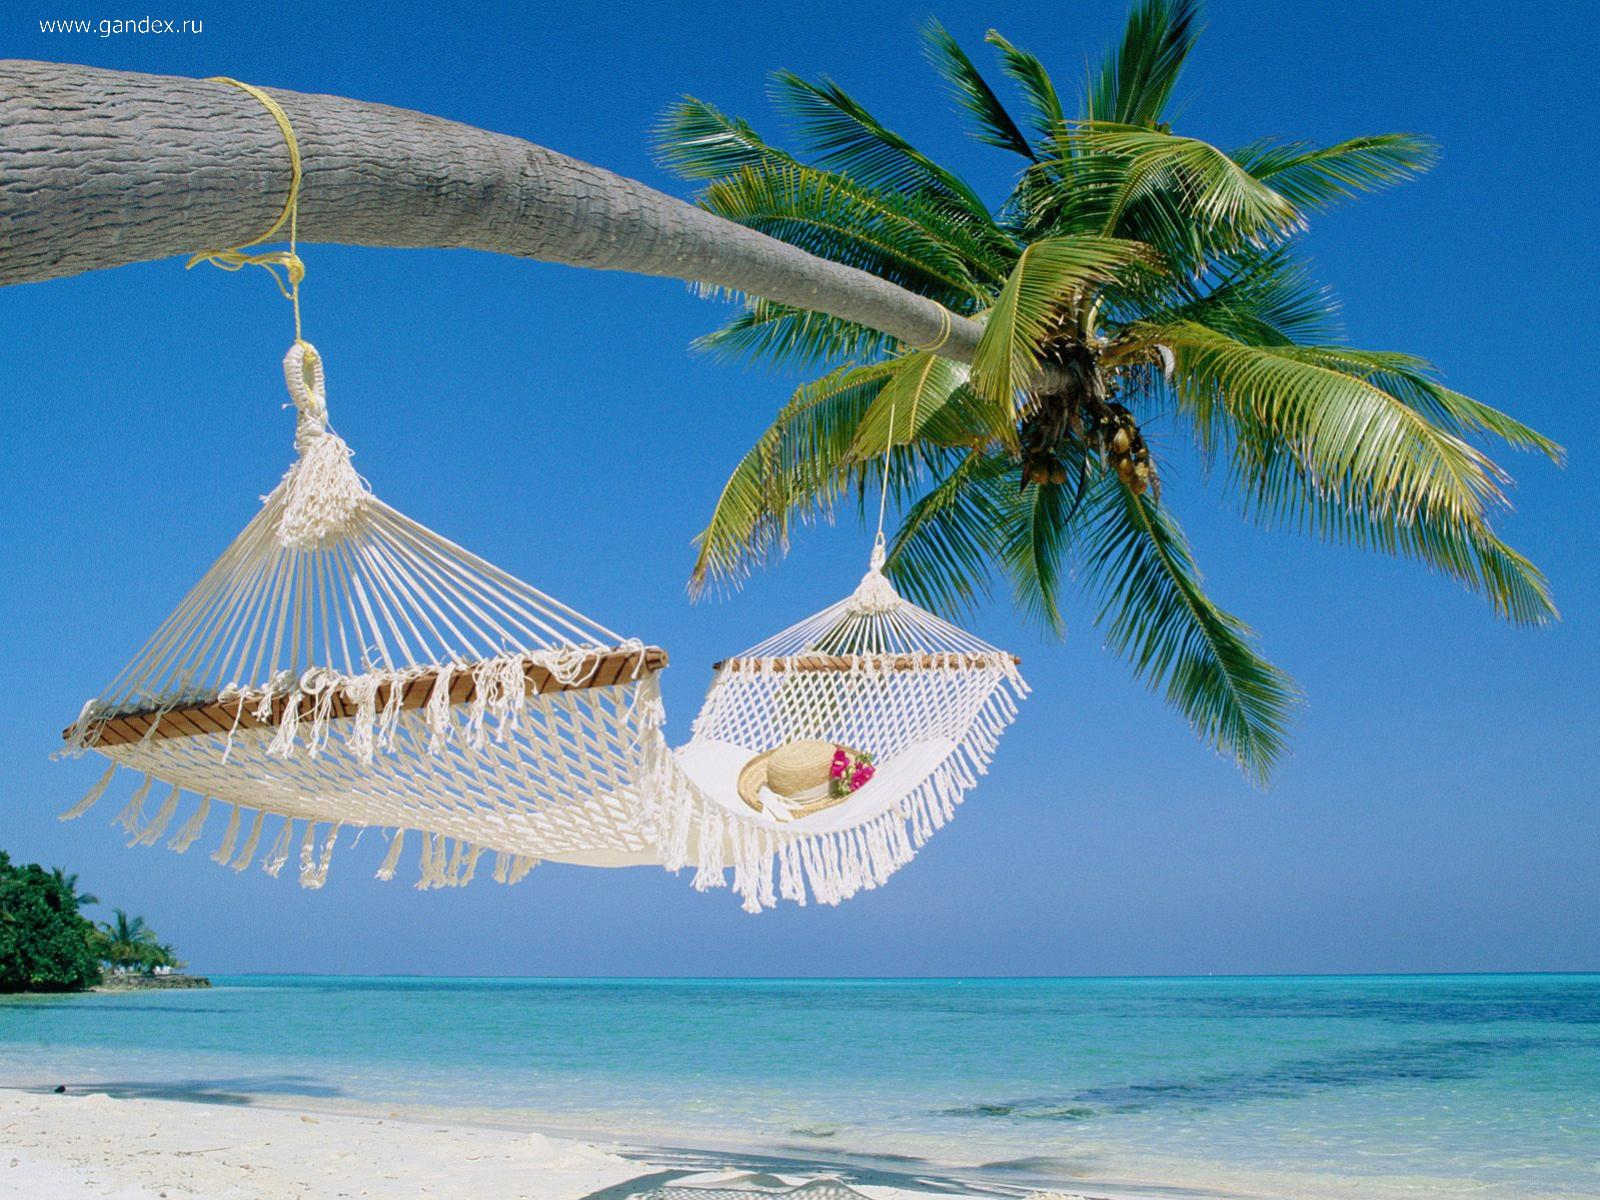 Palm tree and a hammock on the beautiful shores of the islands, the Maldives, Wallpaper.